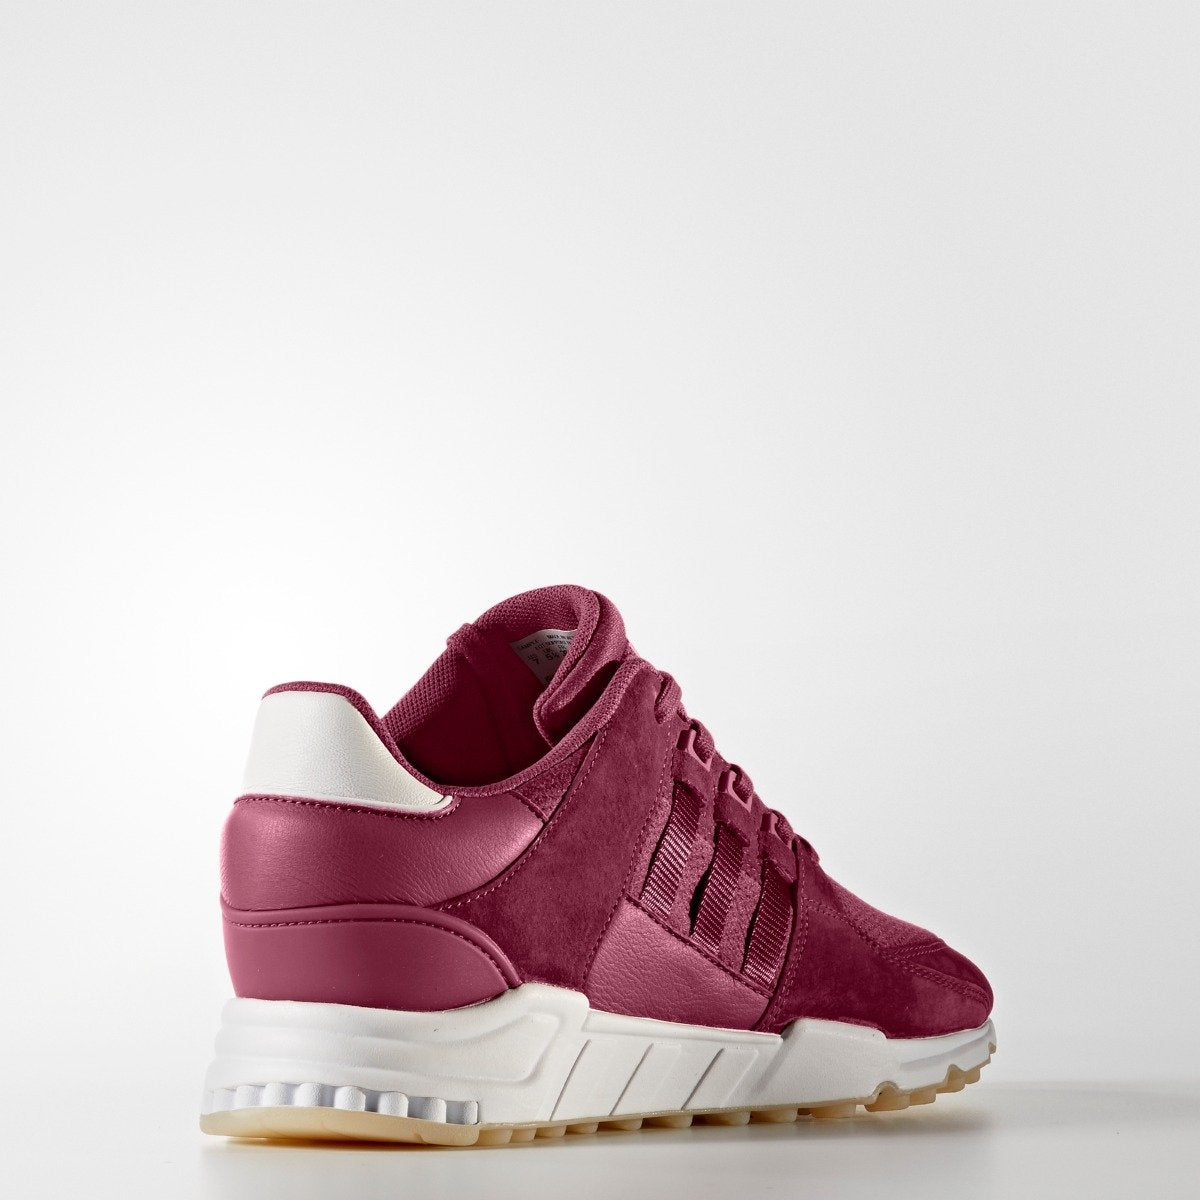 new arrival 926ab 24d03 Women's adidas Originals EQT Support RF Shoes Mystery Ruby ...